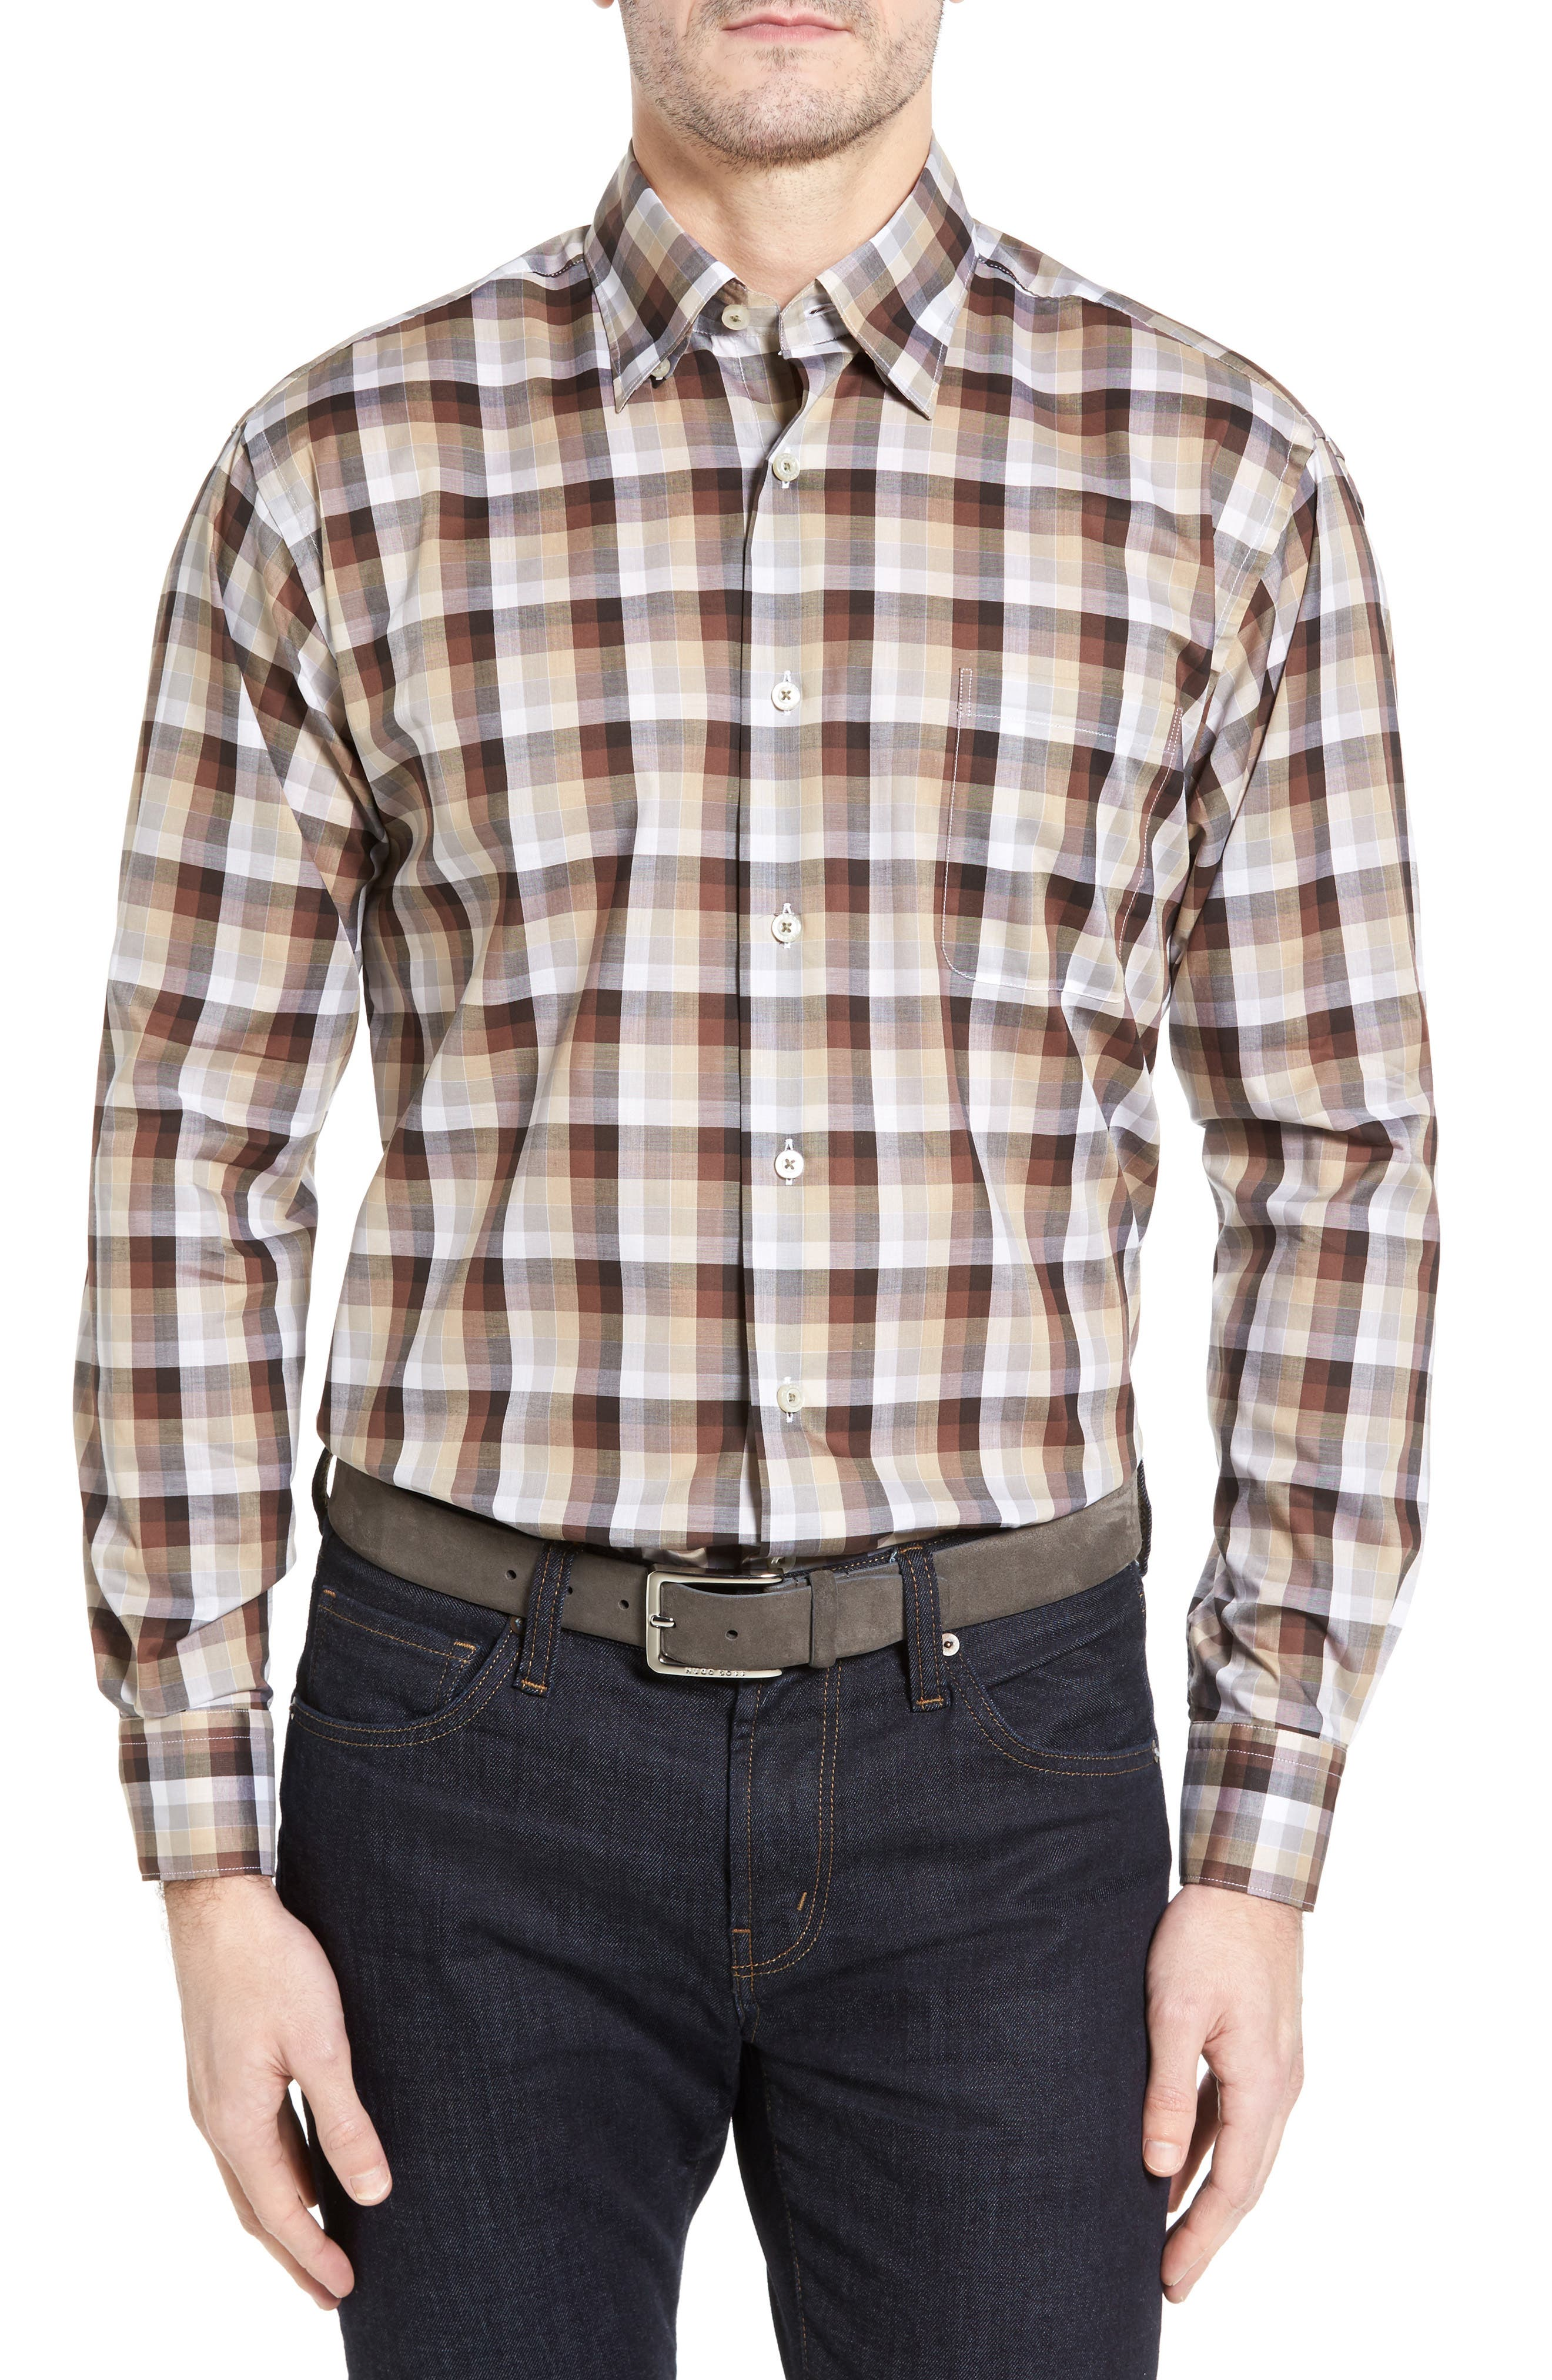 Anderson Classic Fit Check Sport Shirt,                             Main thumbnail 1, color,                             200